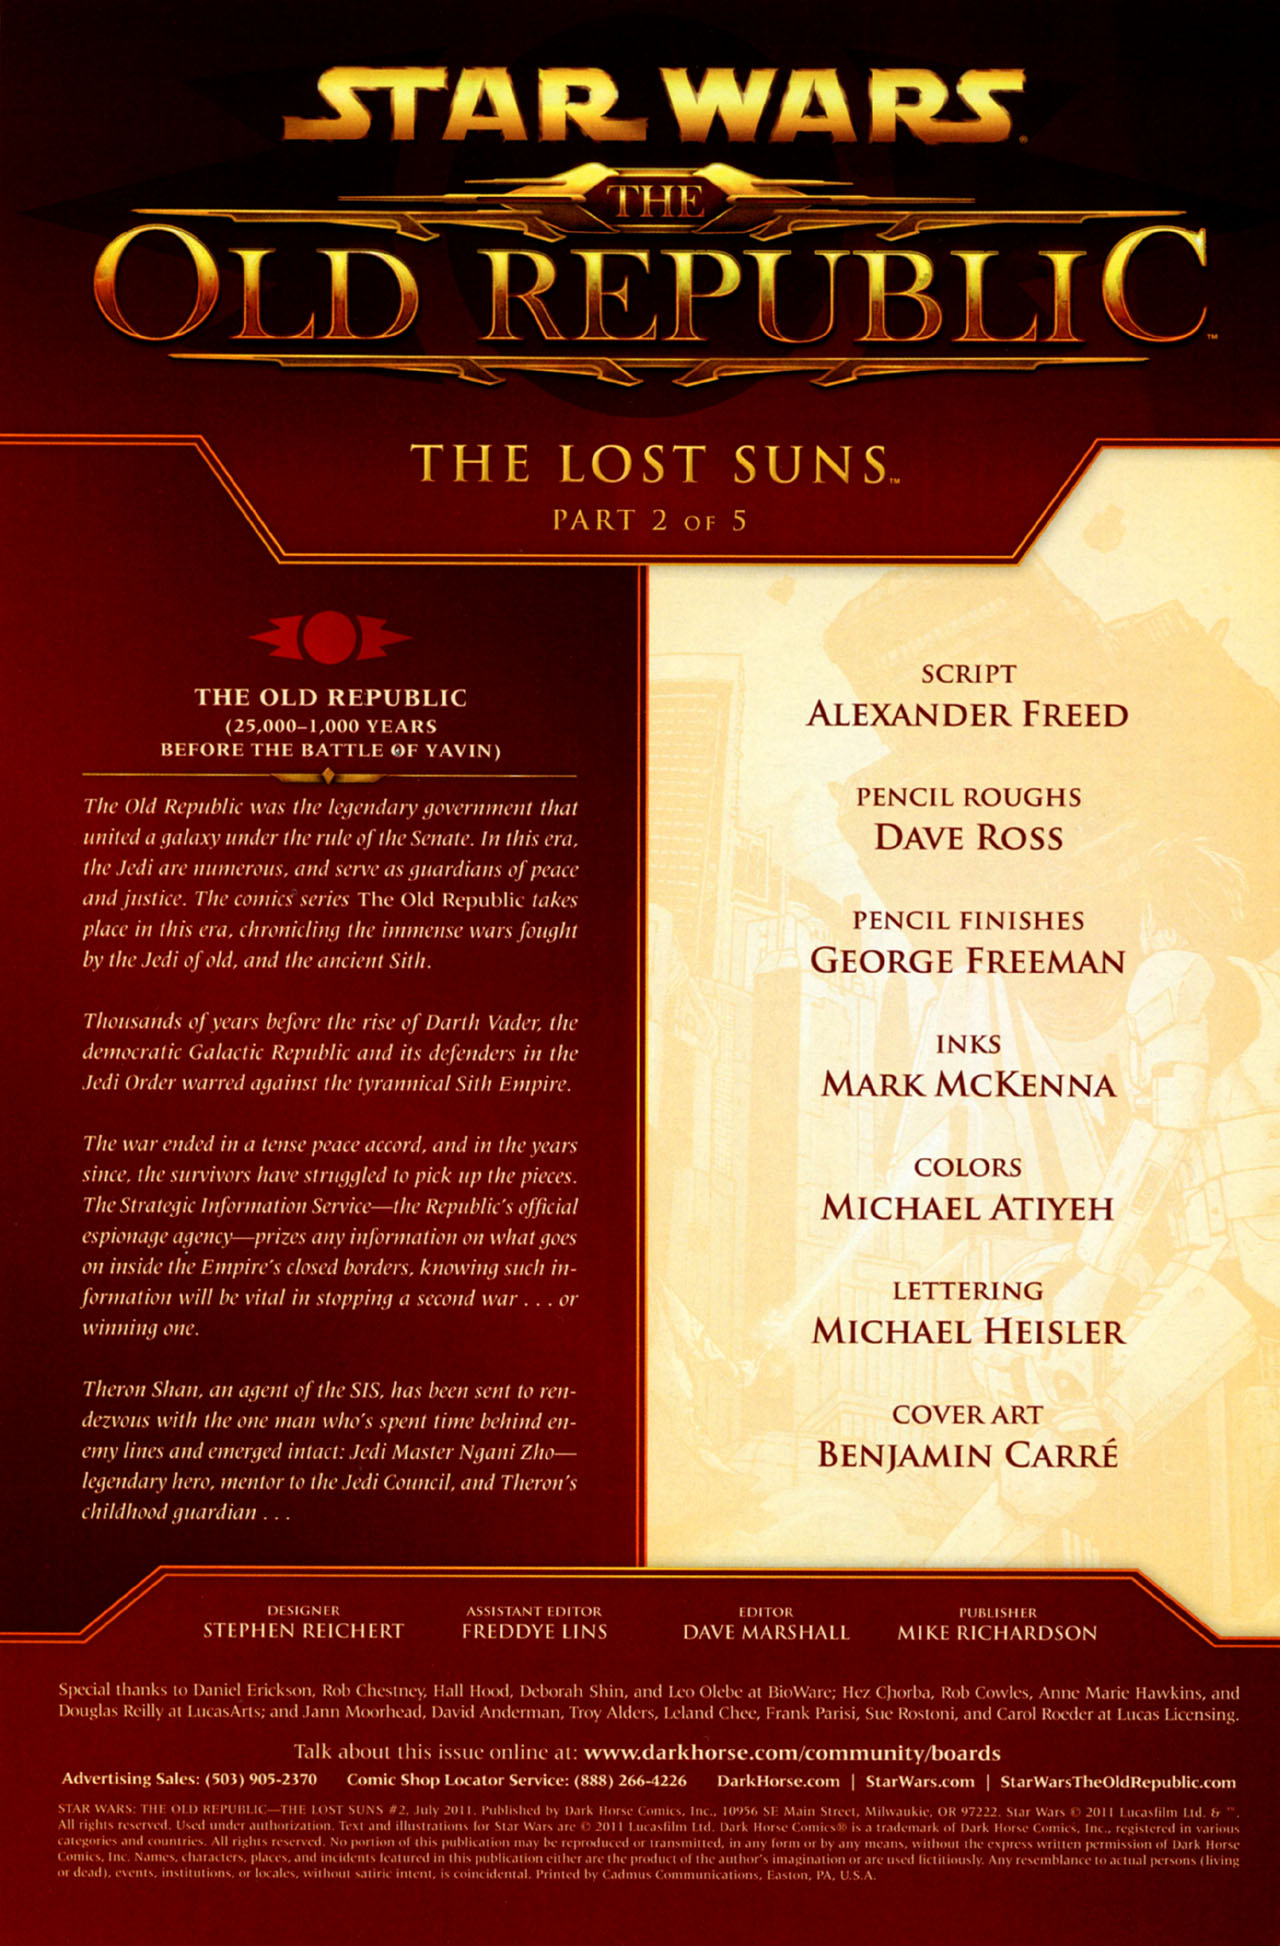 Read online Star Wars: The Old Republic - The Lost Suns comic -  Issue #2 - 2